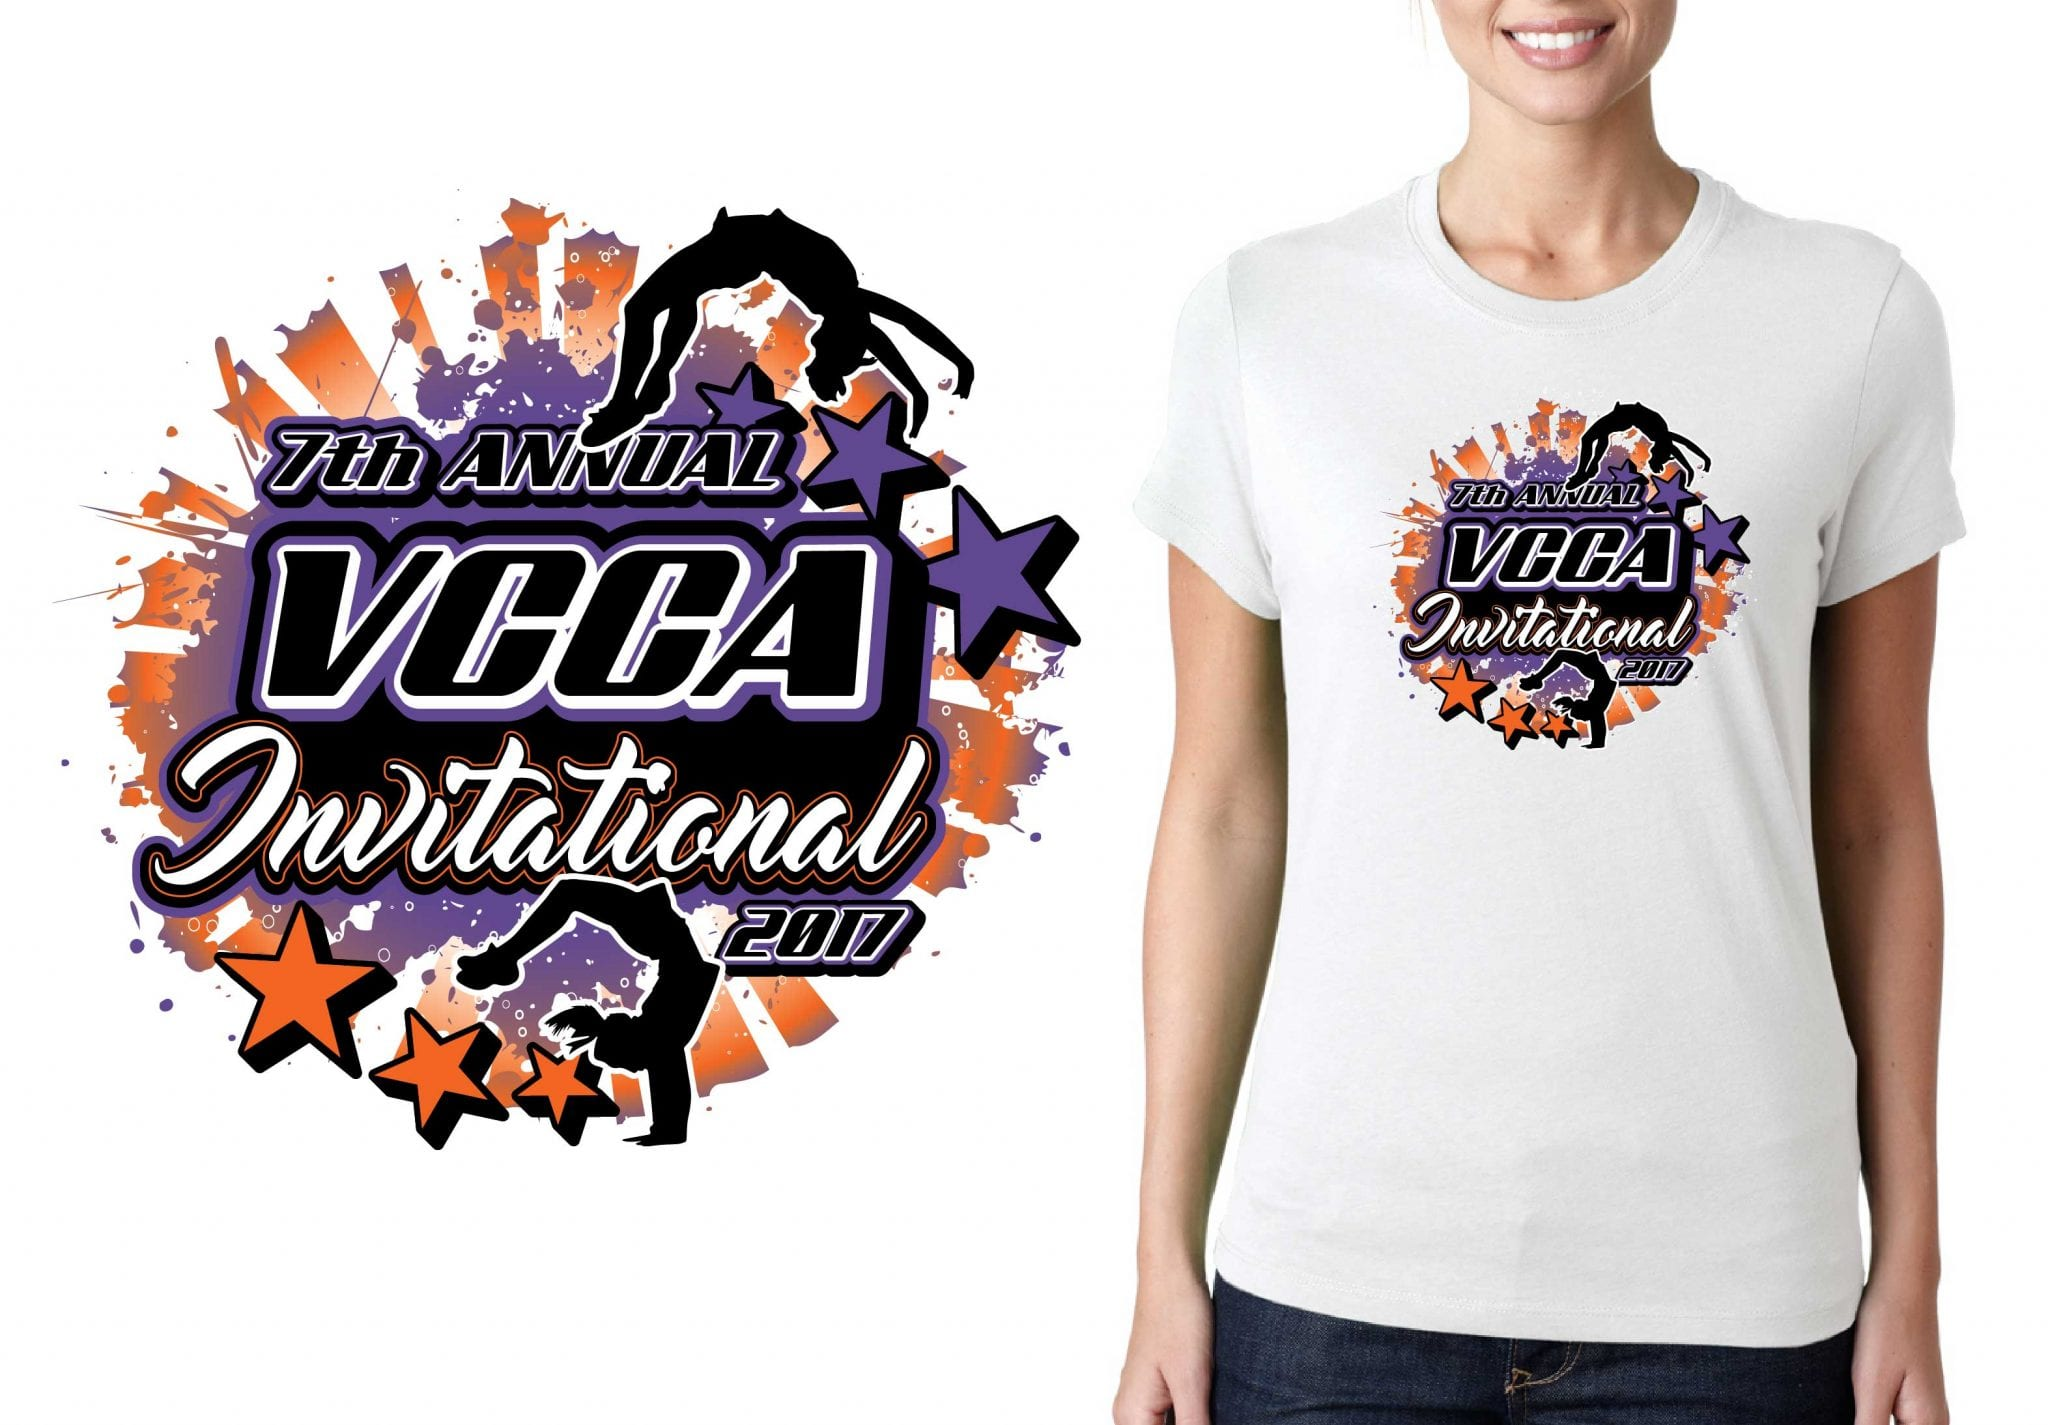 2017 7th Annual VCCA Invitational vector logo design for cheer t-shirt UrArtStudio